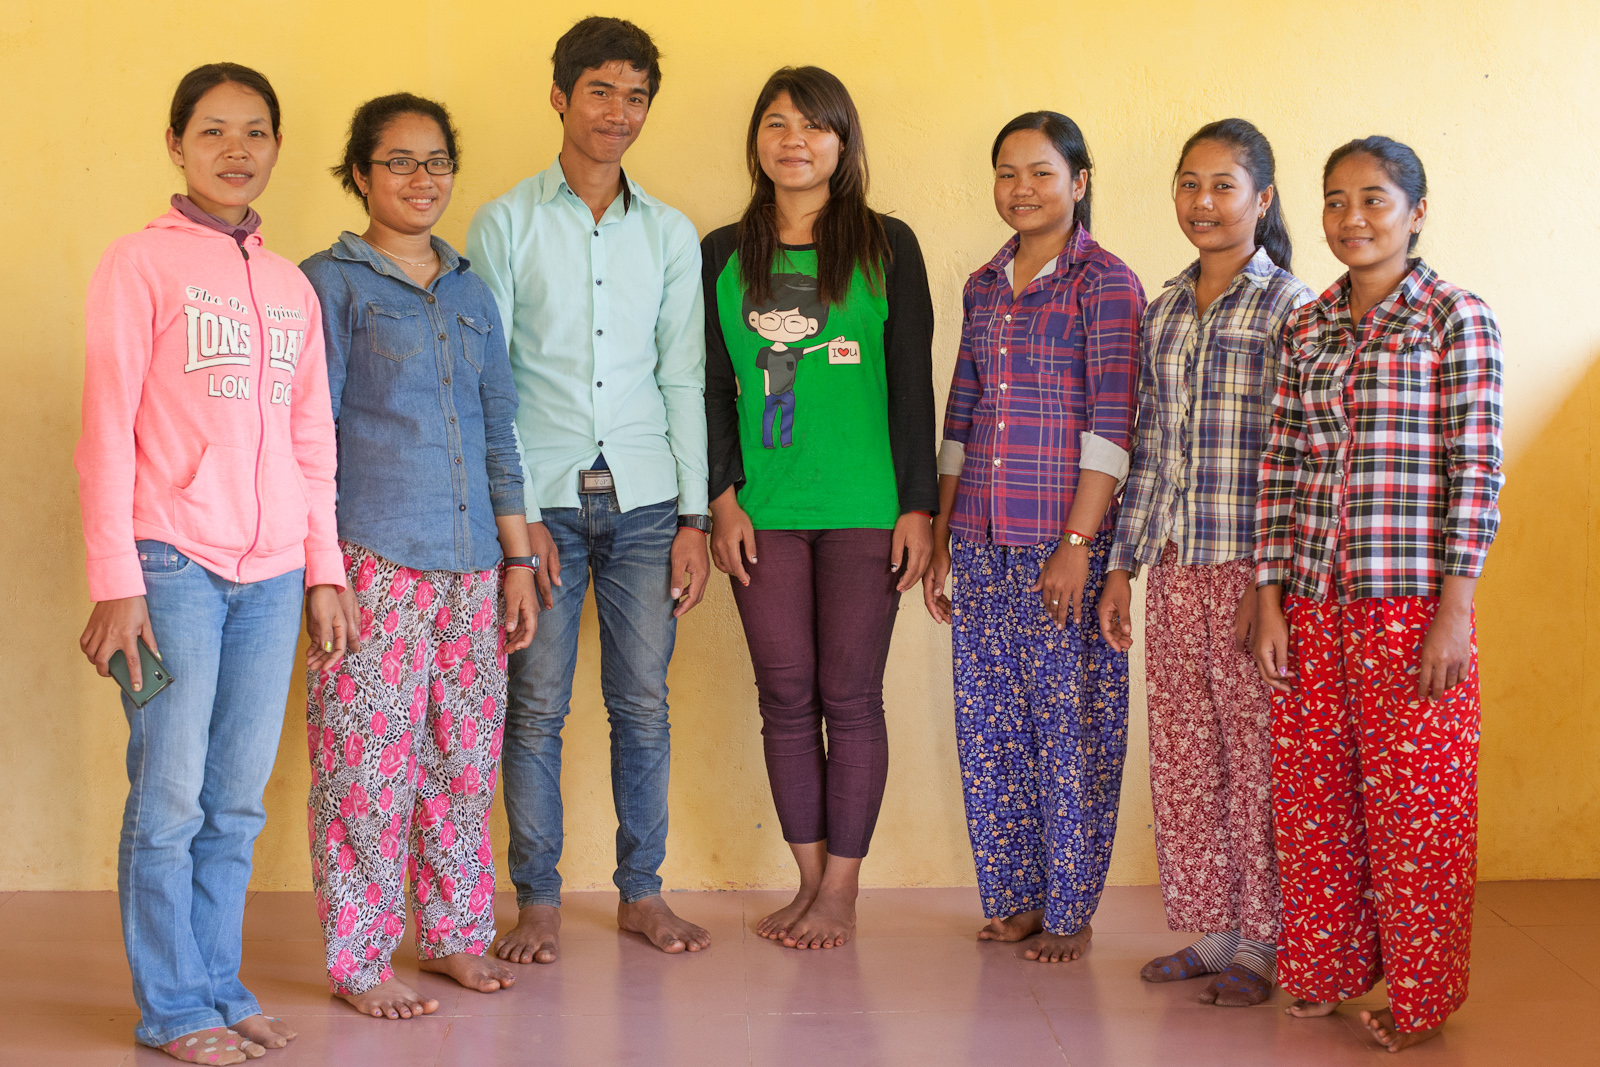 Chanthy, left, with six of the new Alongsiders from her community.